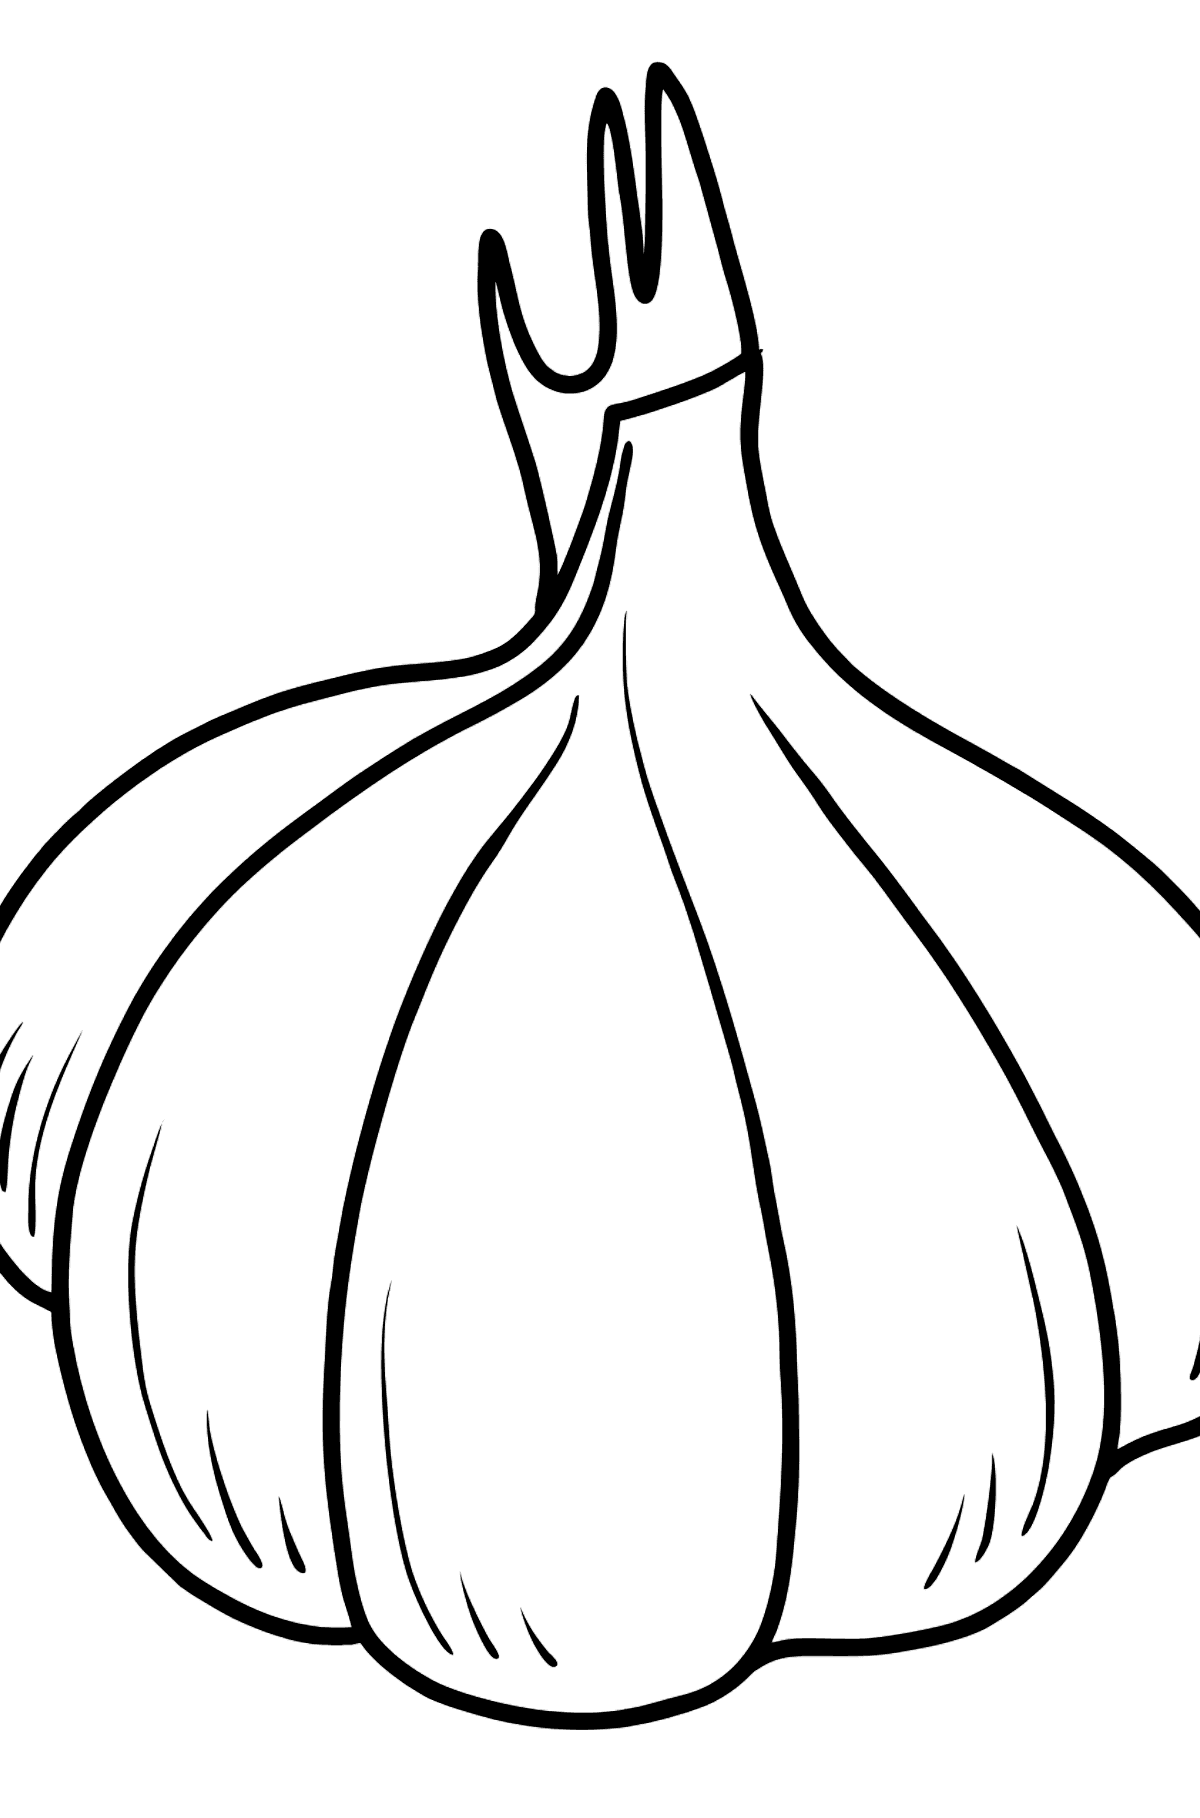 Garlic coloring page - Coloring Pages for Kids